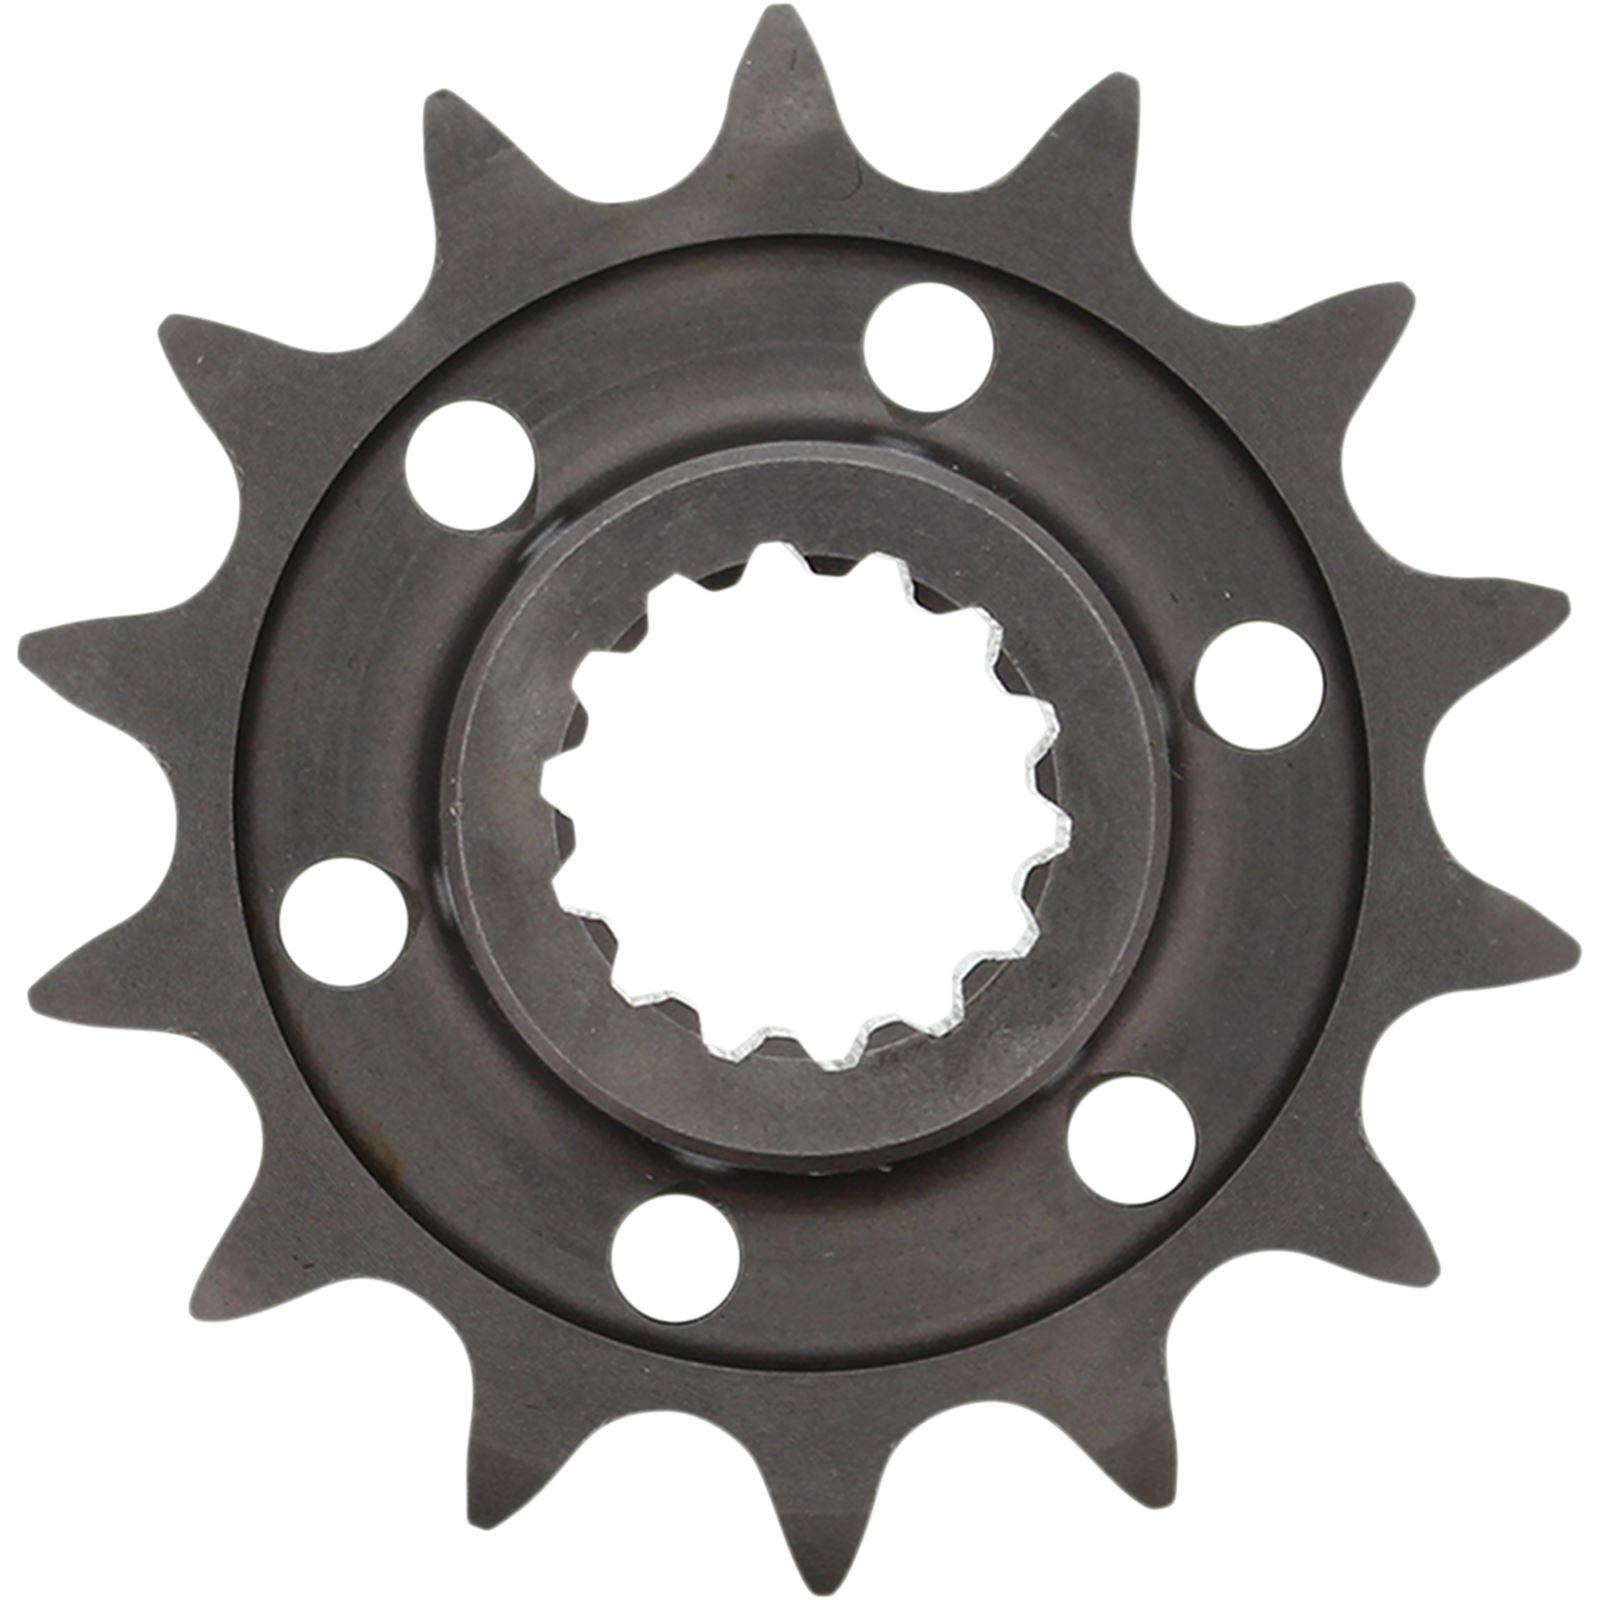 Supersprox Counter Shaft Sprocket - 14-Tooth